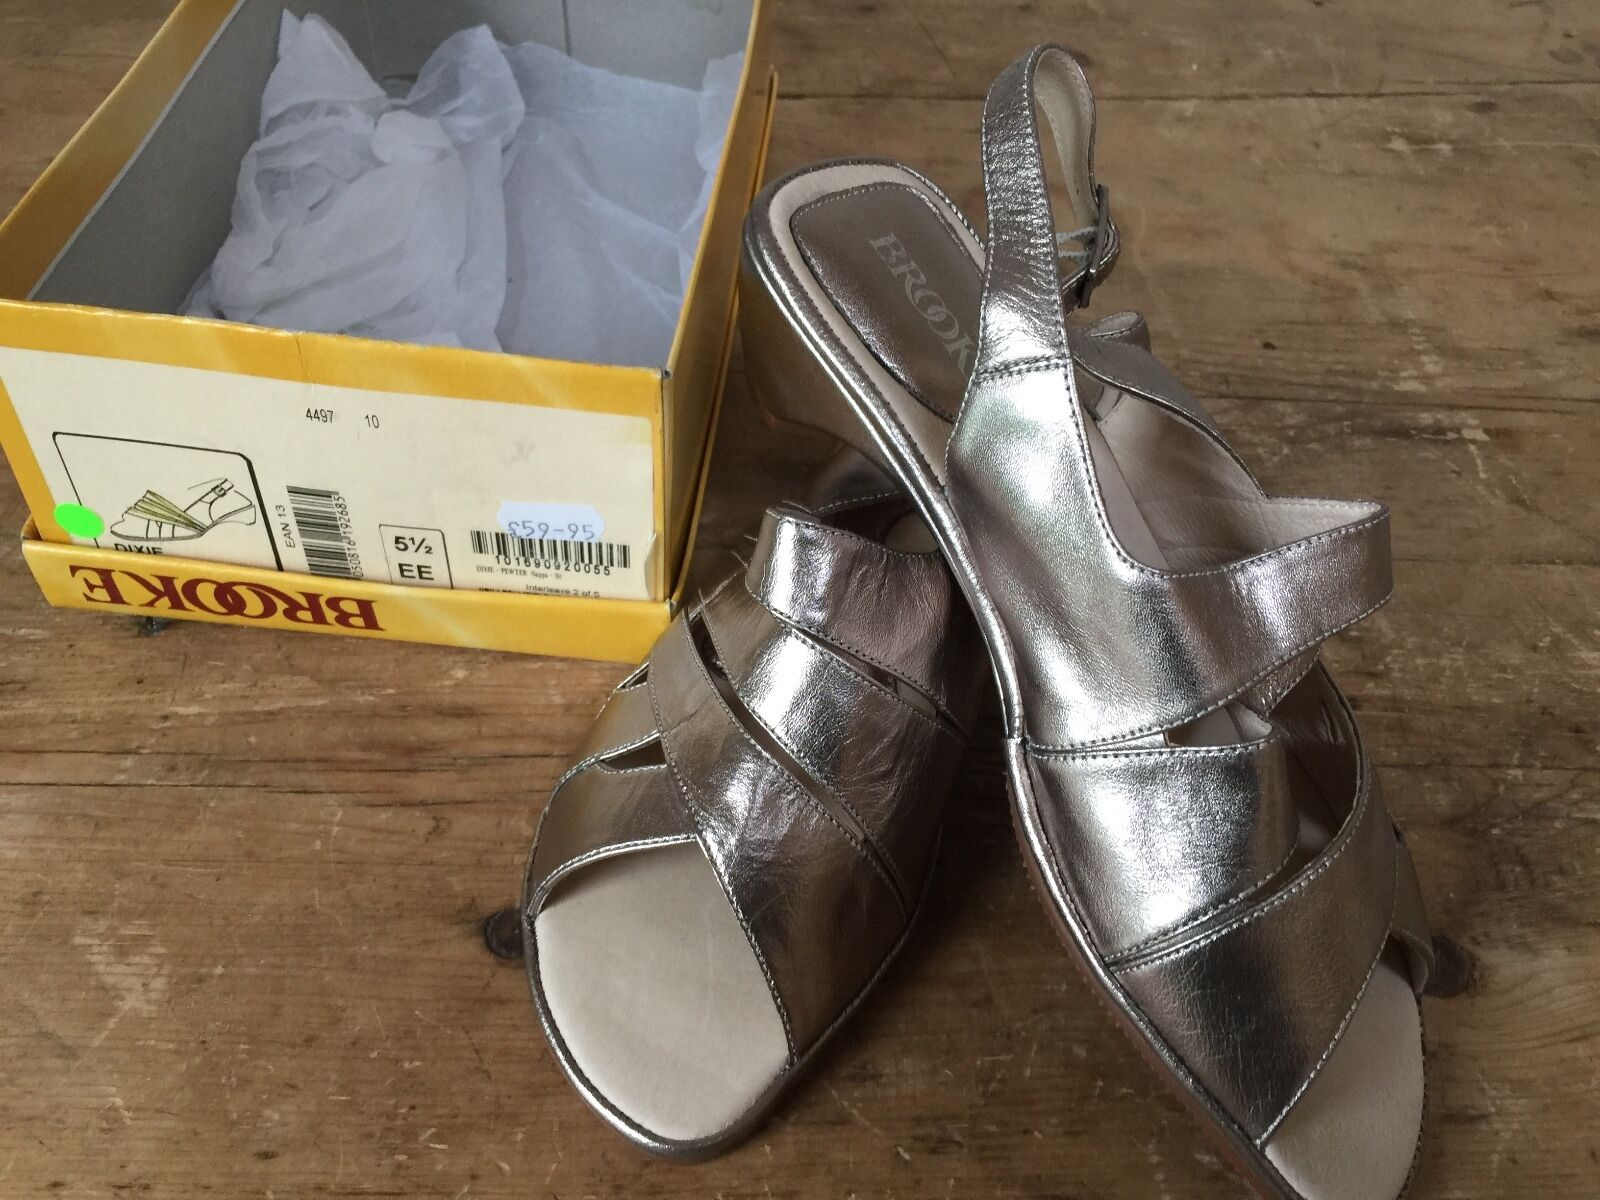 NEW WITH BOX ' BROOKE' PEWTER LEATHER 'DIXIE' STYLE LEATHER SANDALS - UK 5 1 2